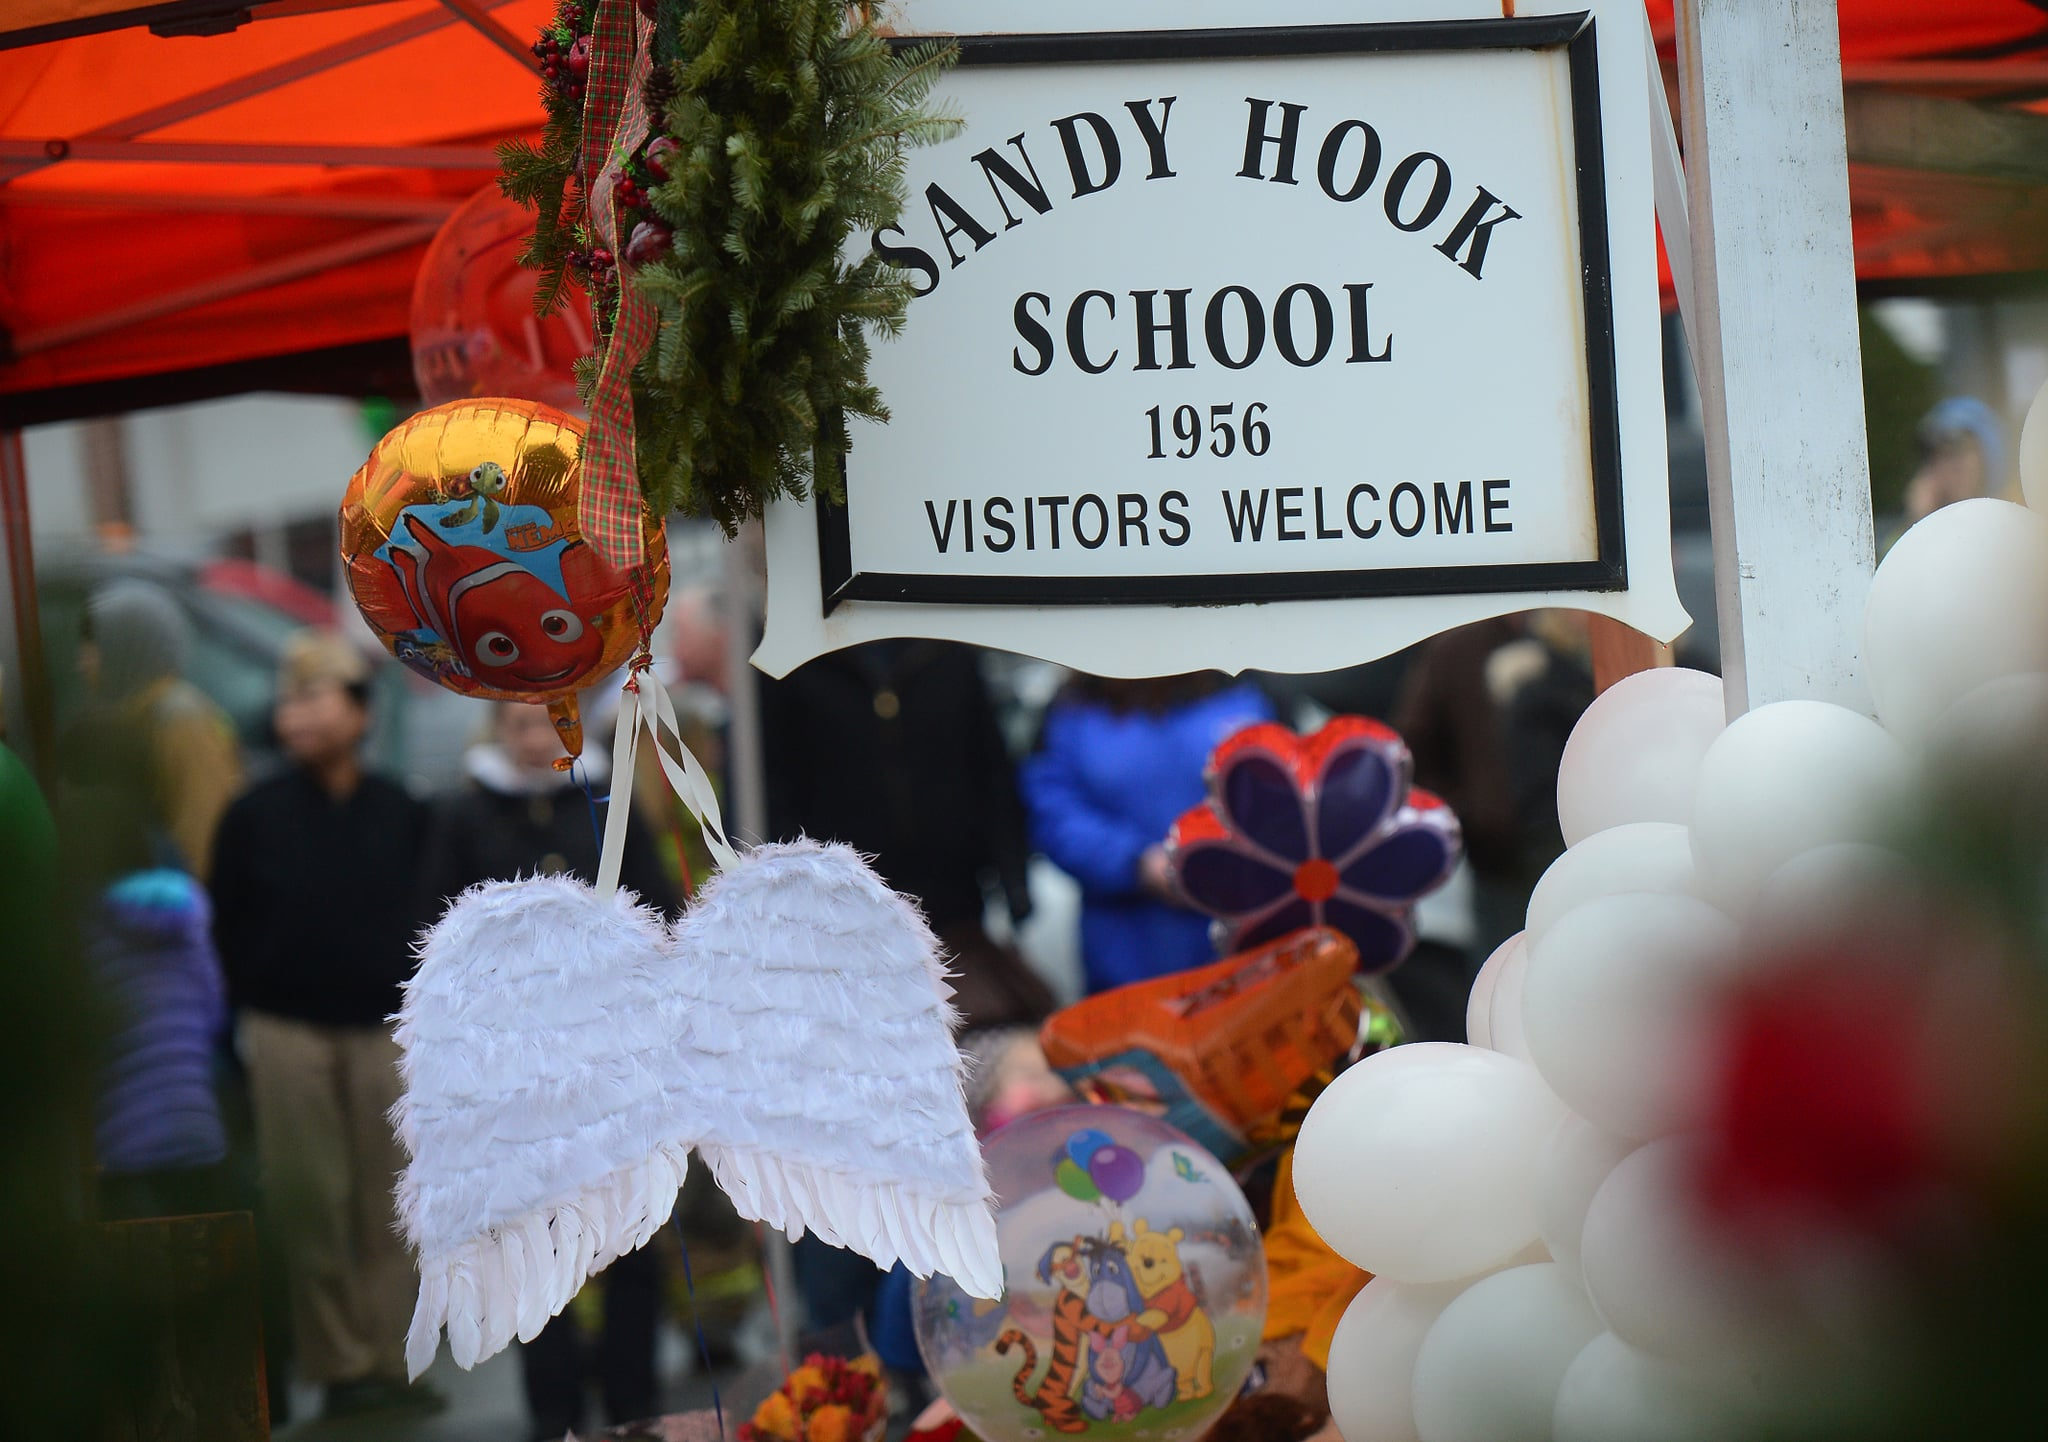 sandy hook chat The spike in gun sales after sandy hook meant more people died  samsung users in the uk will soon be able to video chat with doctors through the.